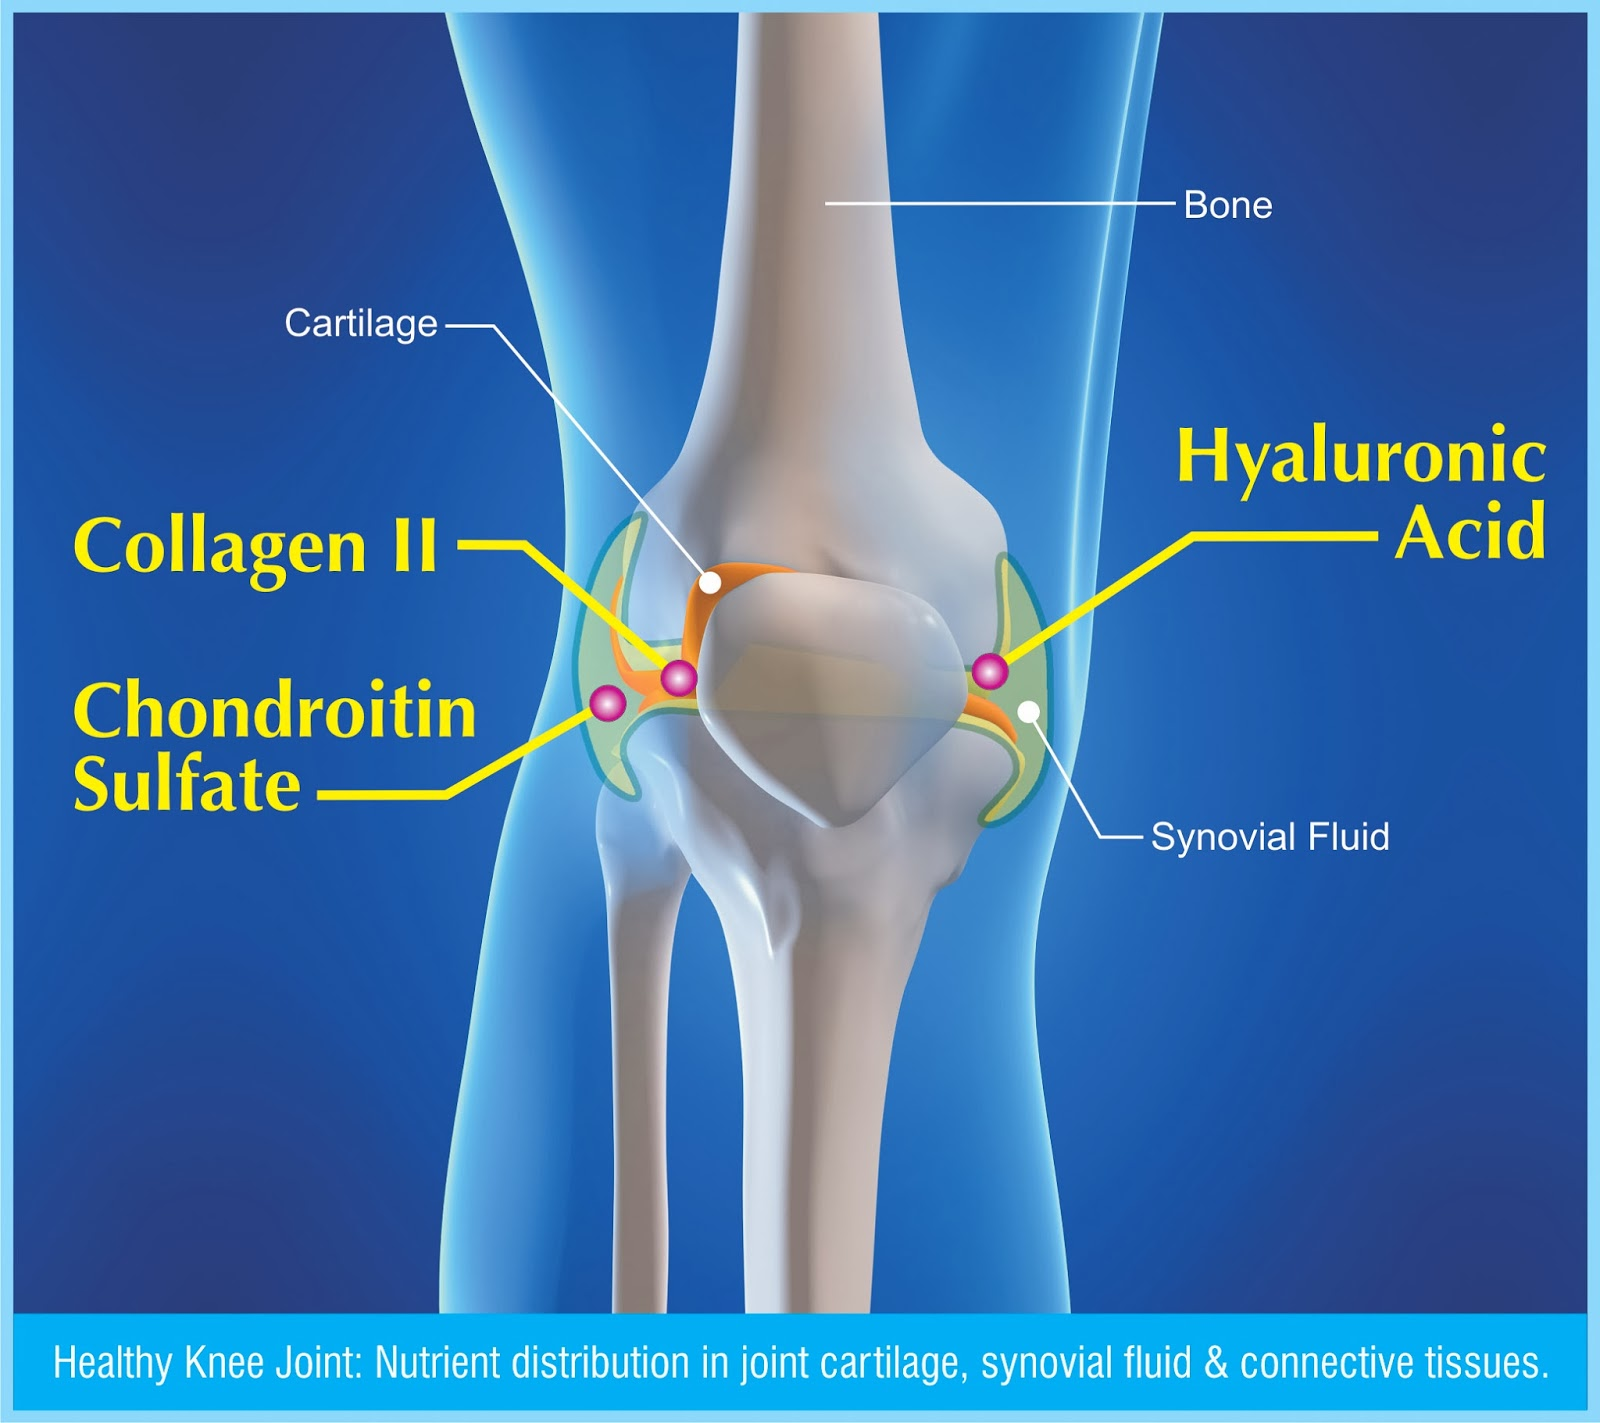 an analysis of osteoarthritis and its treatment with glucosamine sulfate Effect of glucosamine and chondroitin sulfate in symptomatic knee osteoarthritis: a systematic review and meta-analysis of randomized placebo-controlled trials.